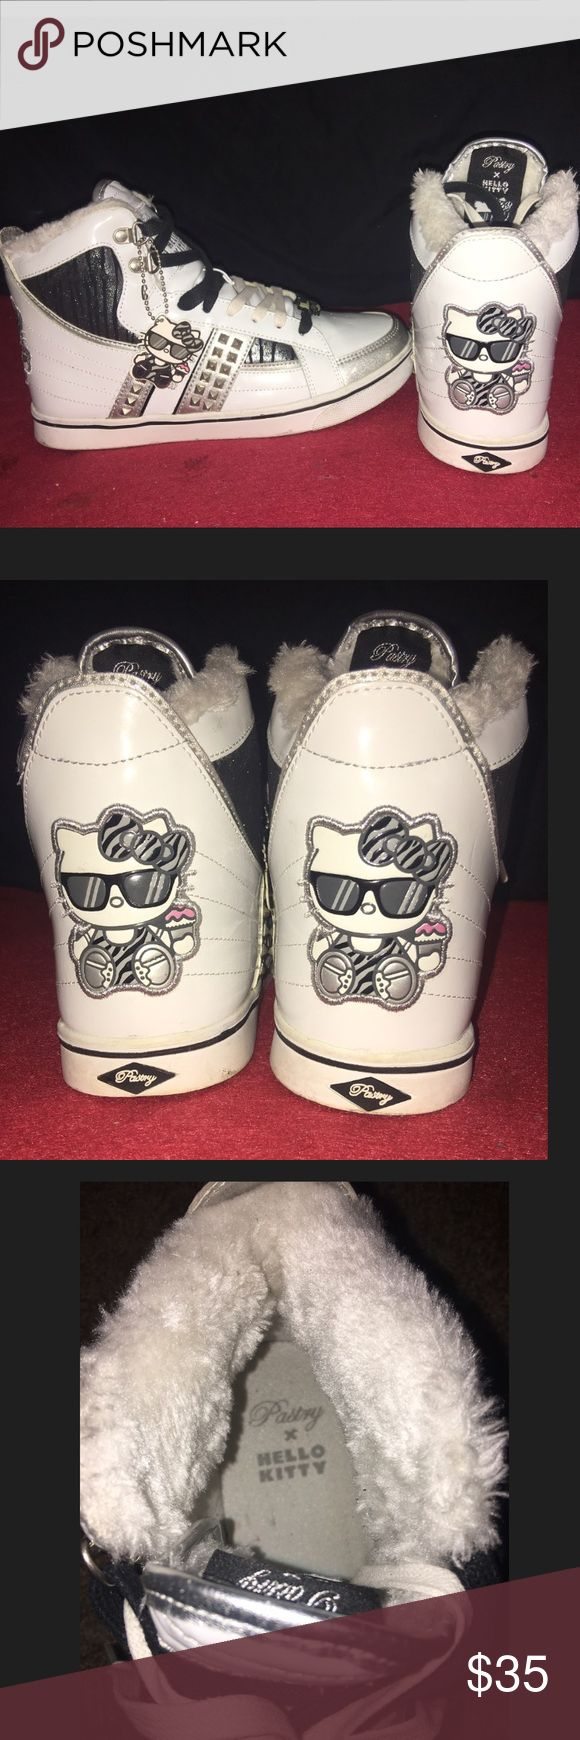 Pastry X hello kitty sneakers Pastry shoes are by celebrities Angela & Vanessa Simmons. These are pre owned Hello Kitty Shoes Sneakers